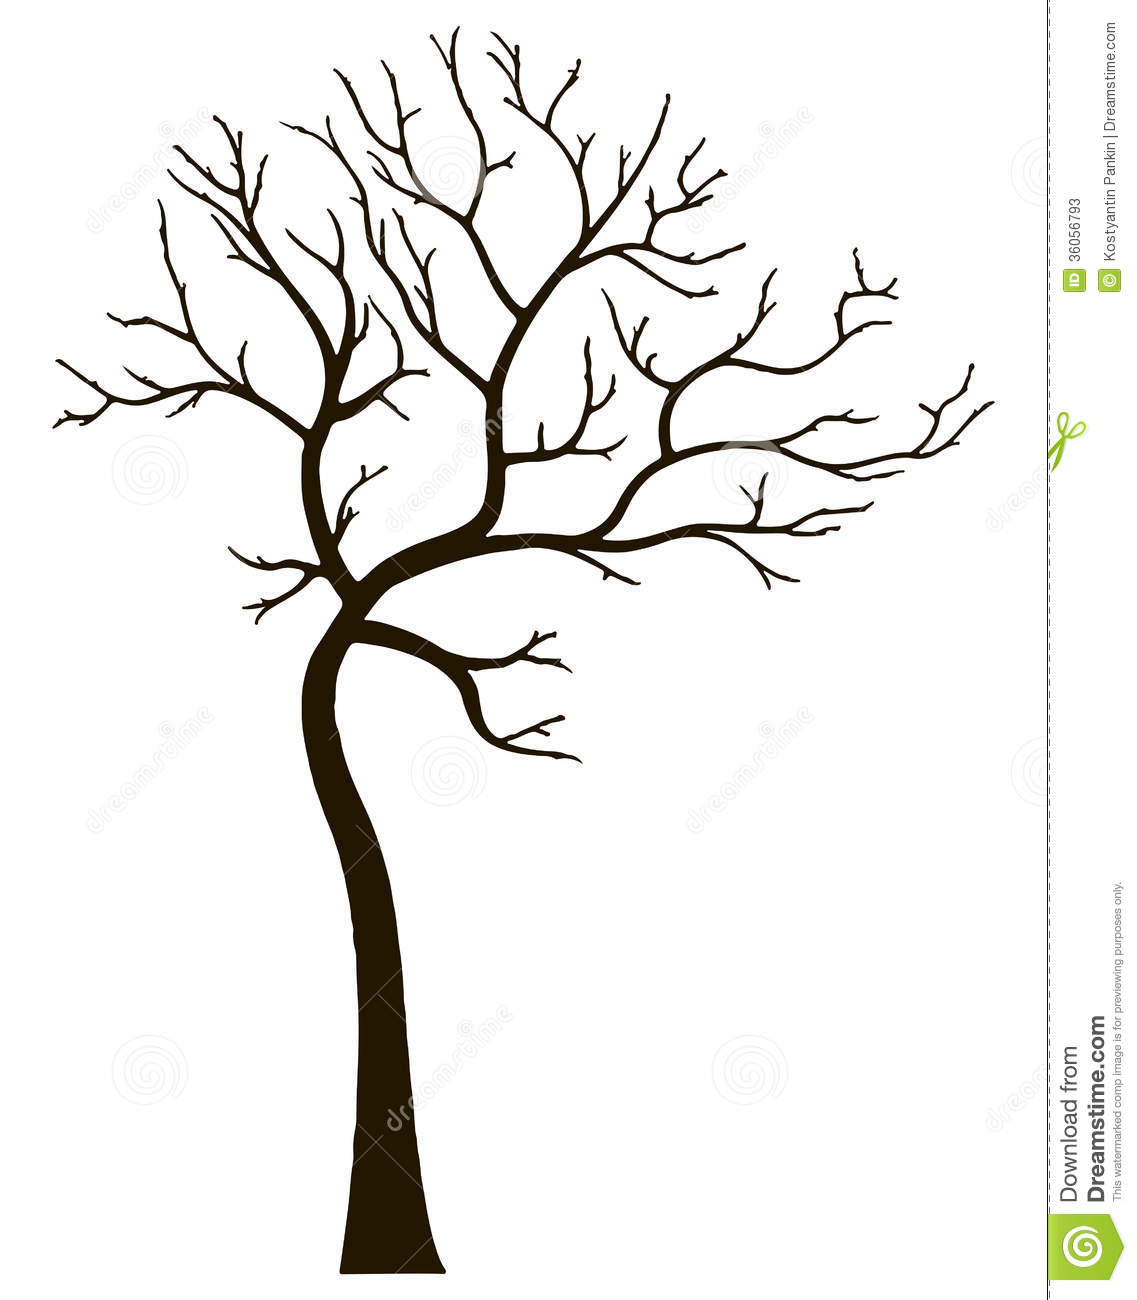 tree vector image free decor royalty vectorstock decorative